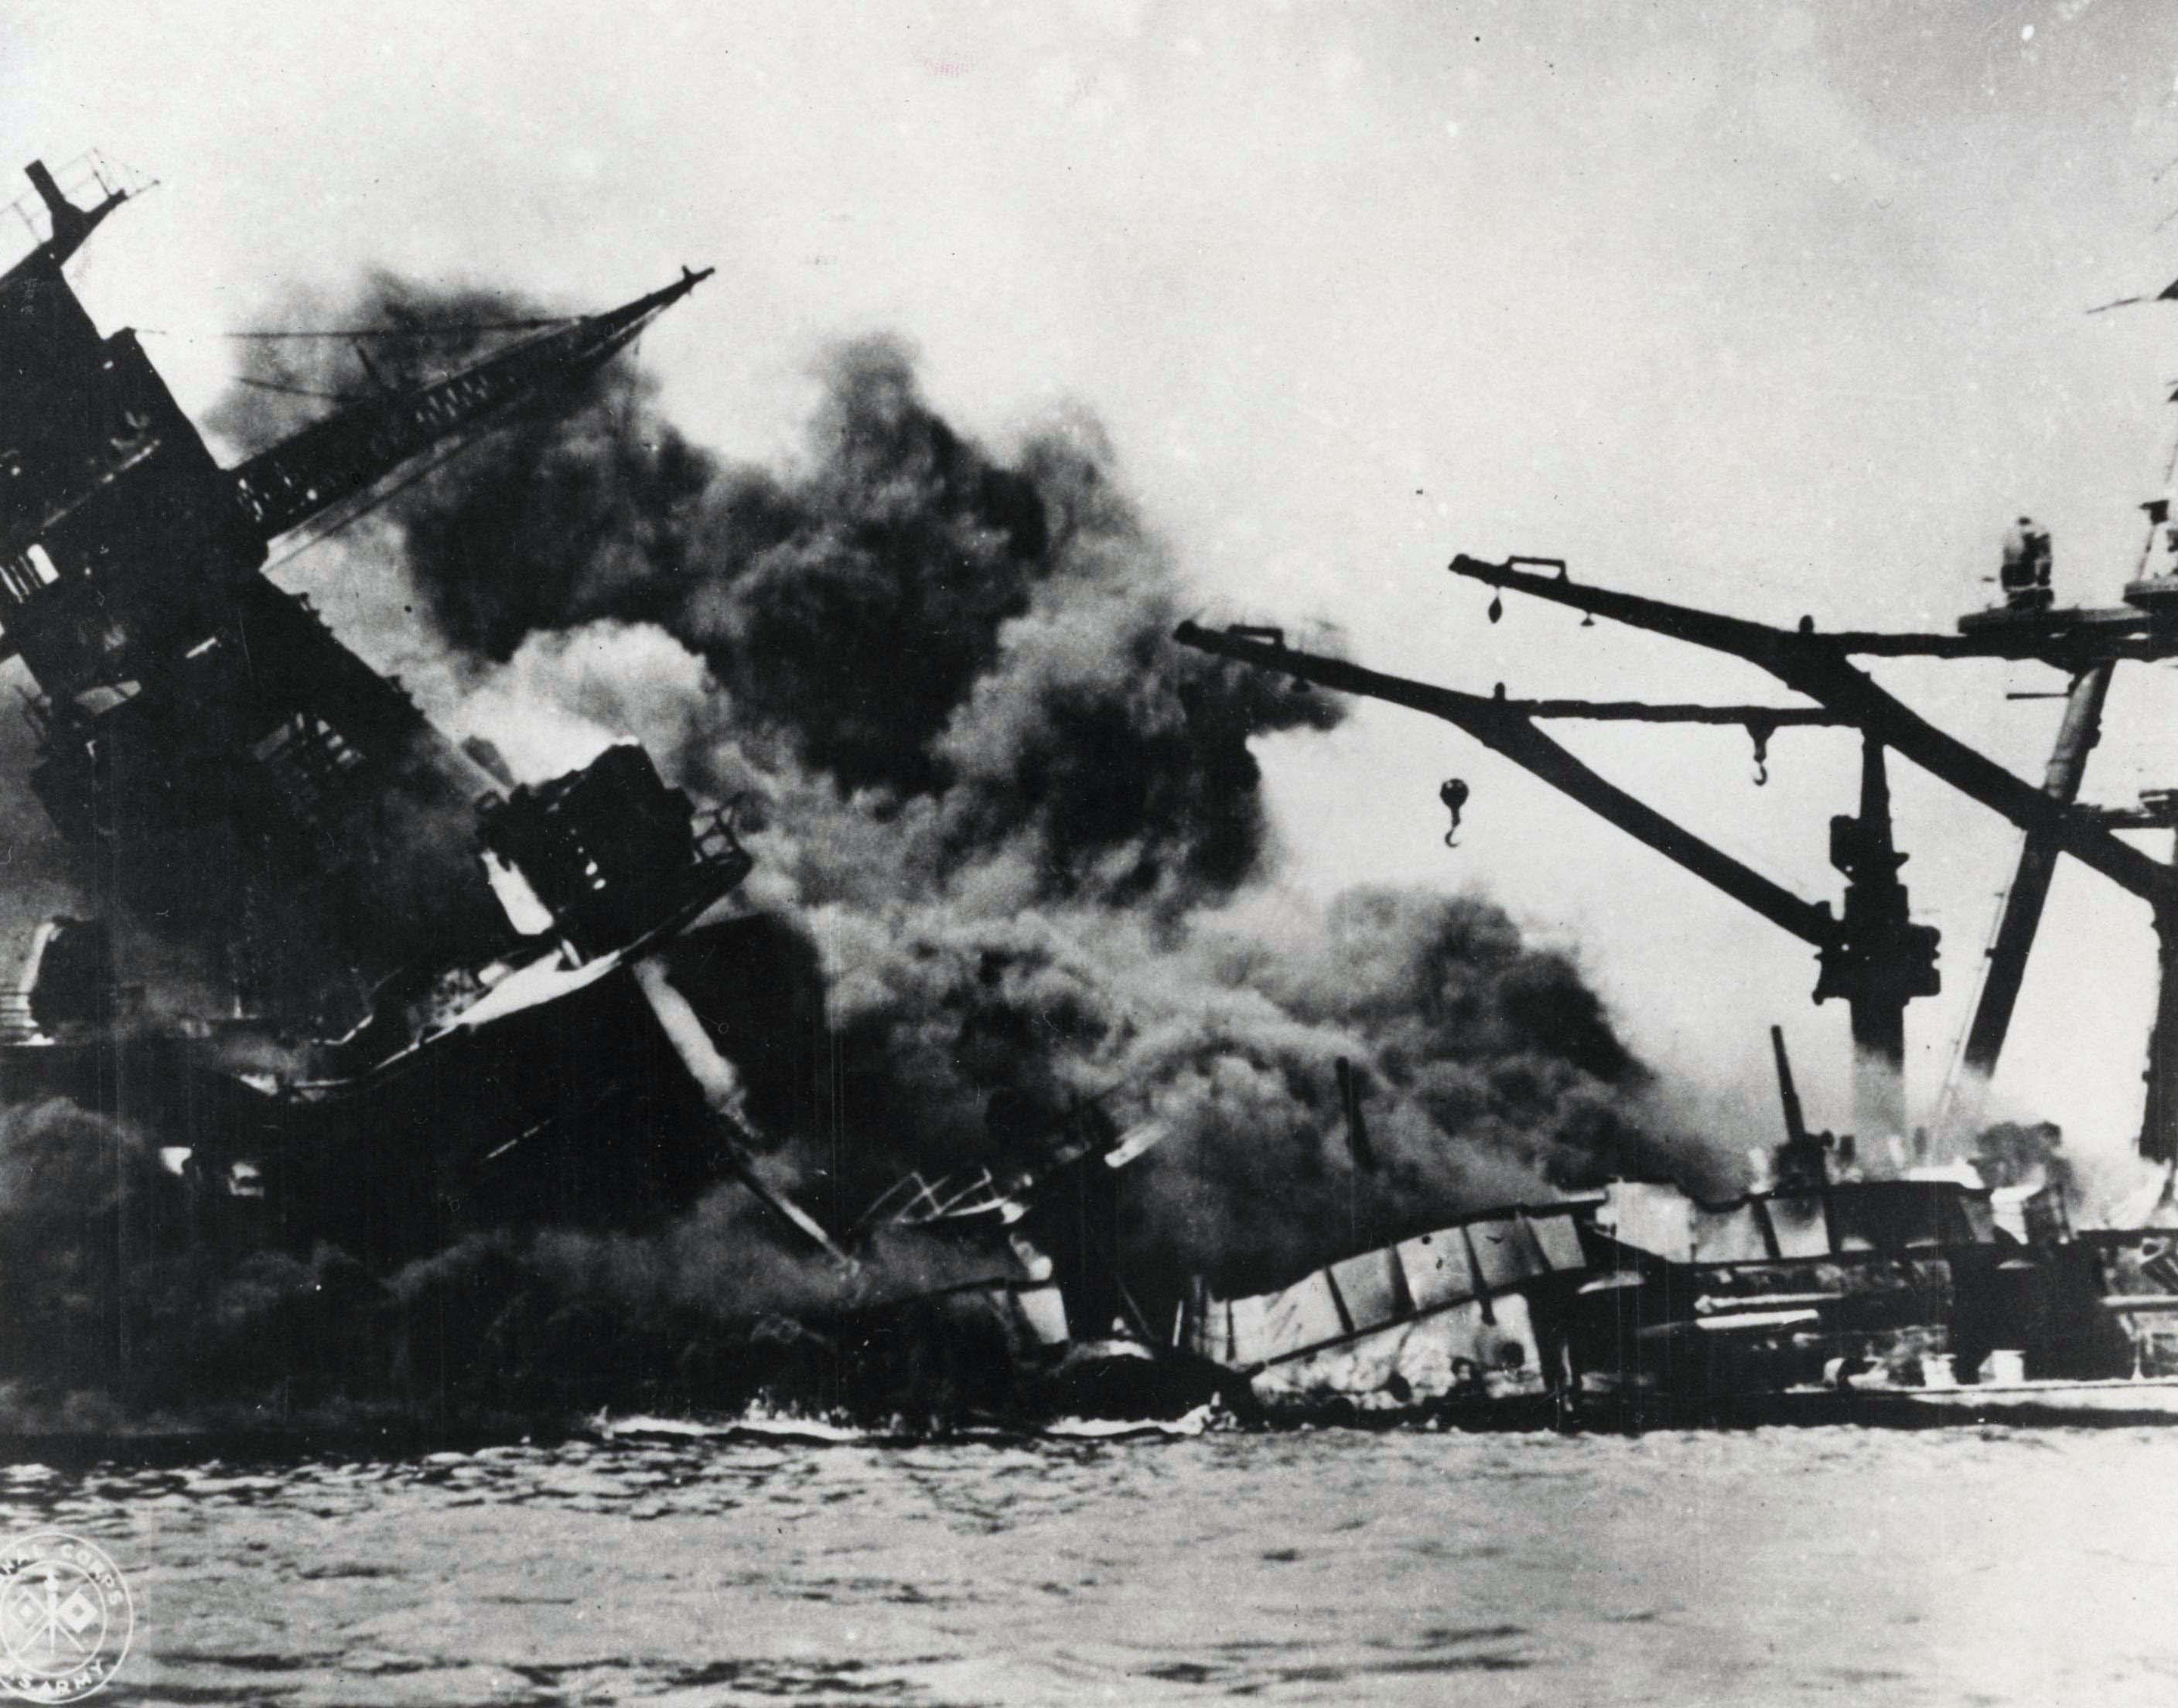 an introduction to the history of the bombing of pearl harbor The pearl harbor attack, 7 december 1941 seabee history seabee history - introduction an administrative history pearl harbor navy medical activities.